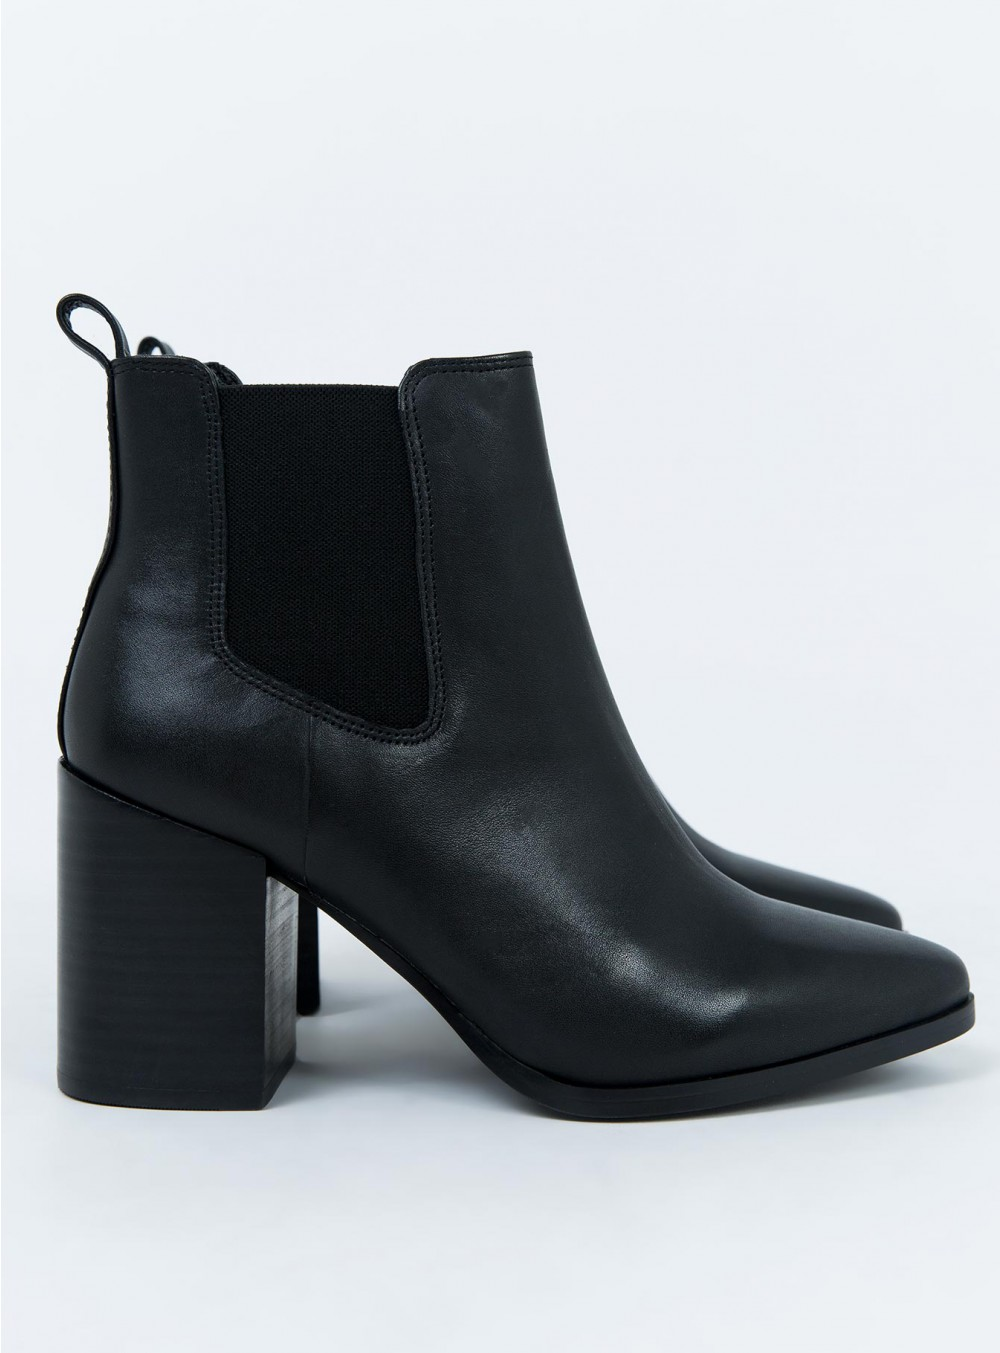 WINDSOR SMITH FRAN BOOTS BLACK .jpg